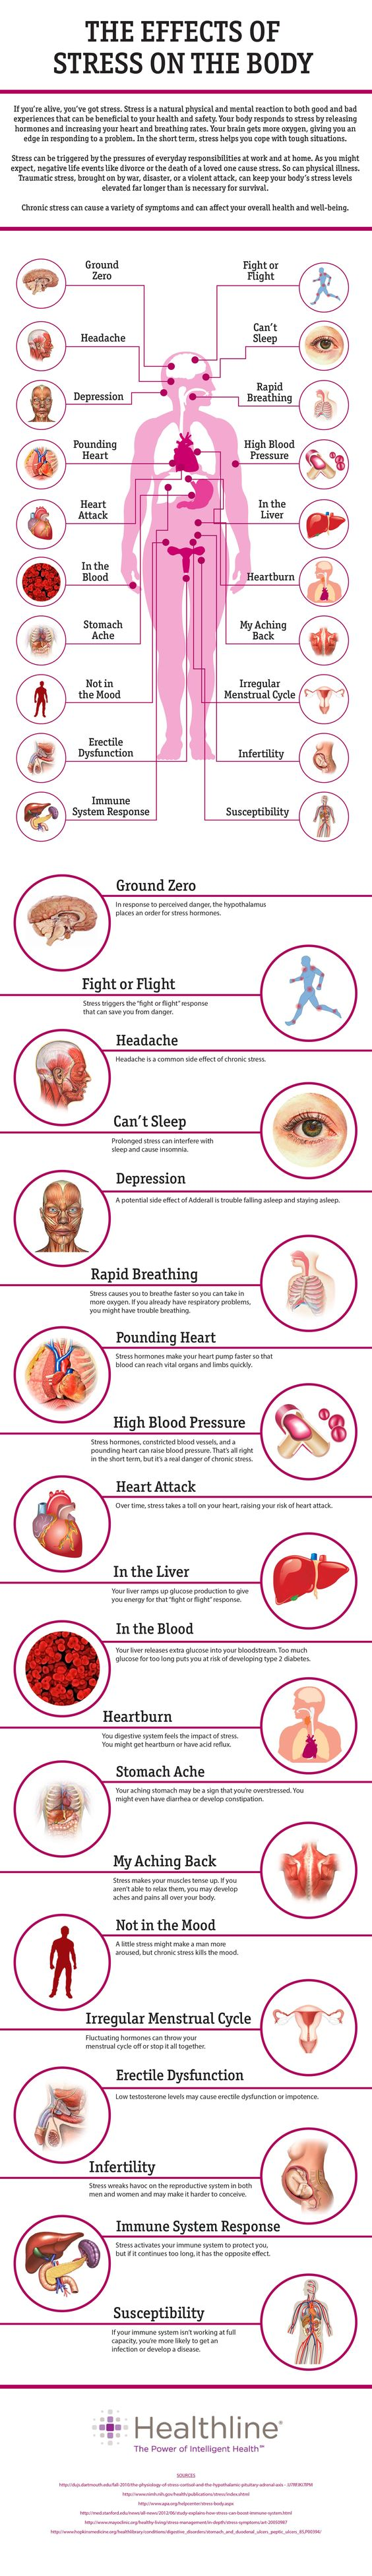 20 Effects Of Stress On The Body=> http://www.healthline.com/health/stress/effects-on-body #stress